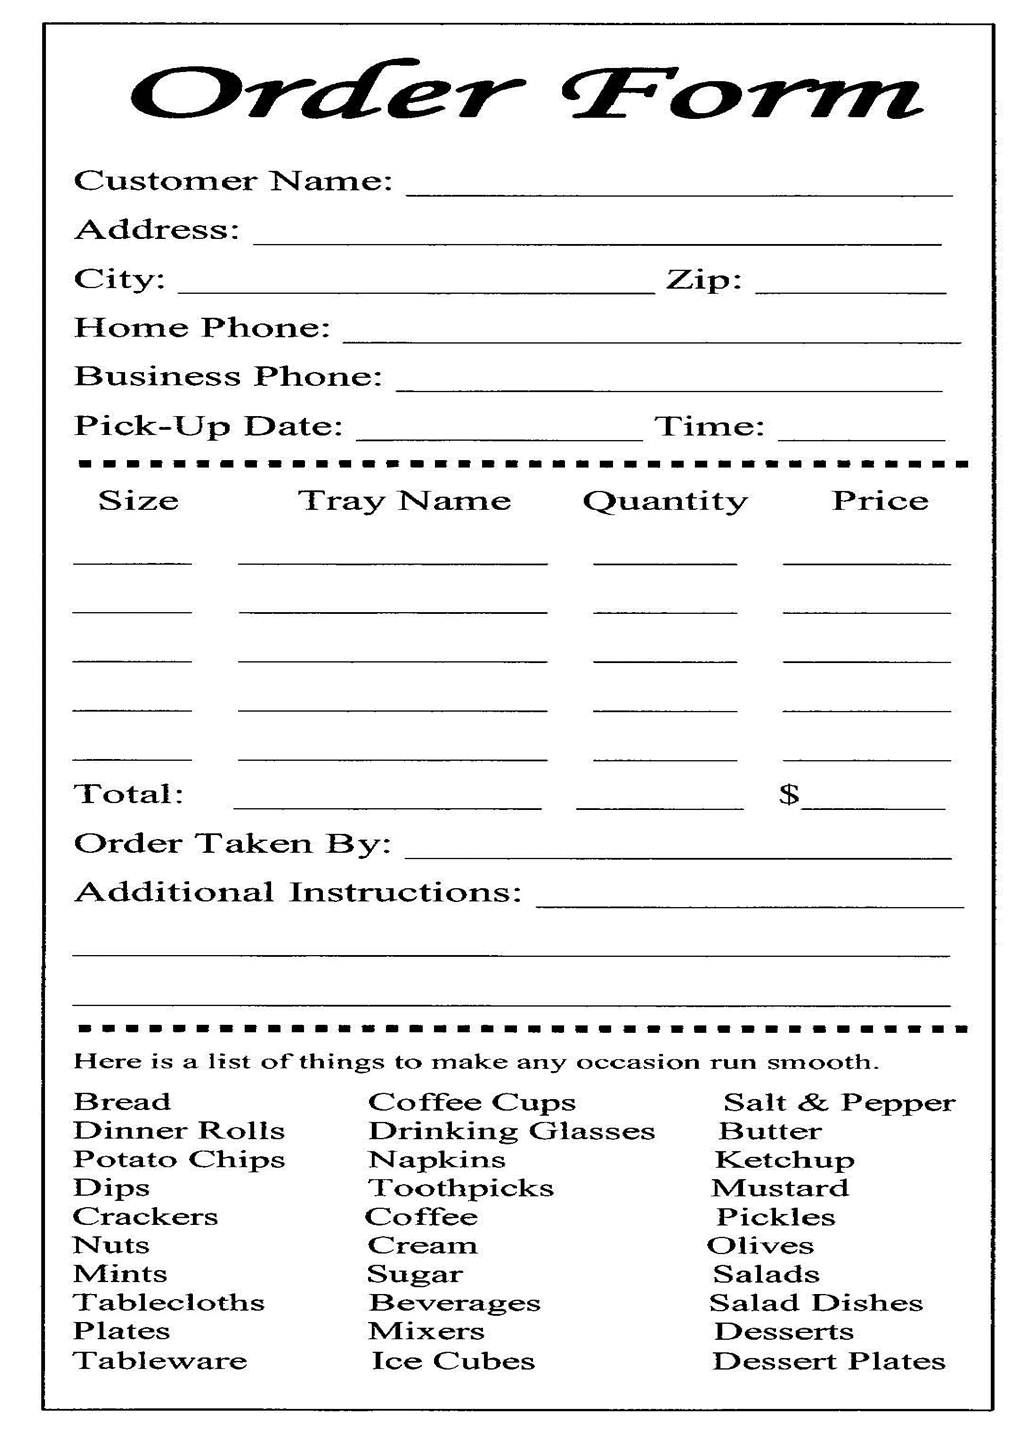 out order sign template | datariouruguay on signed consent form, no trespassing form, sign inventory form, signed letter form, orientation form, sign design form, sign home, sign agreement form, sign quote form, pick up sign form, sign request form, sign list form, sign in form, sign up here, sign work form,